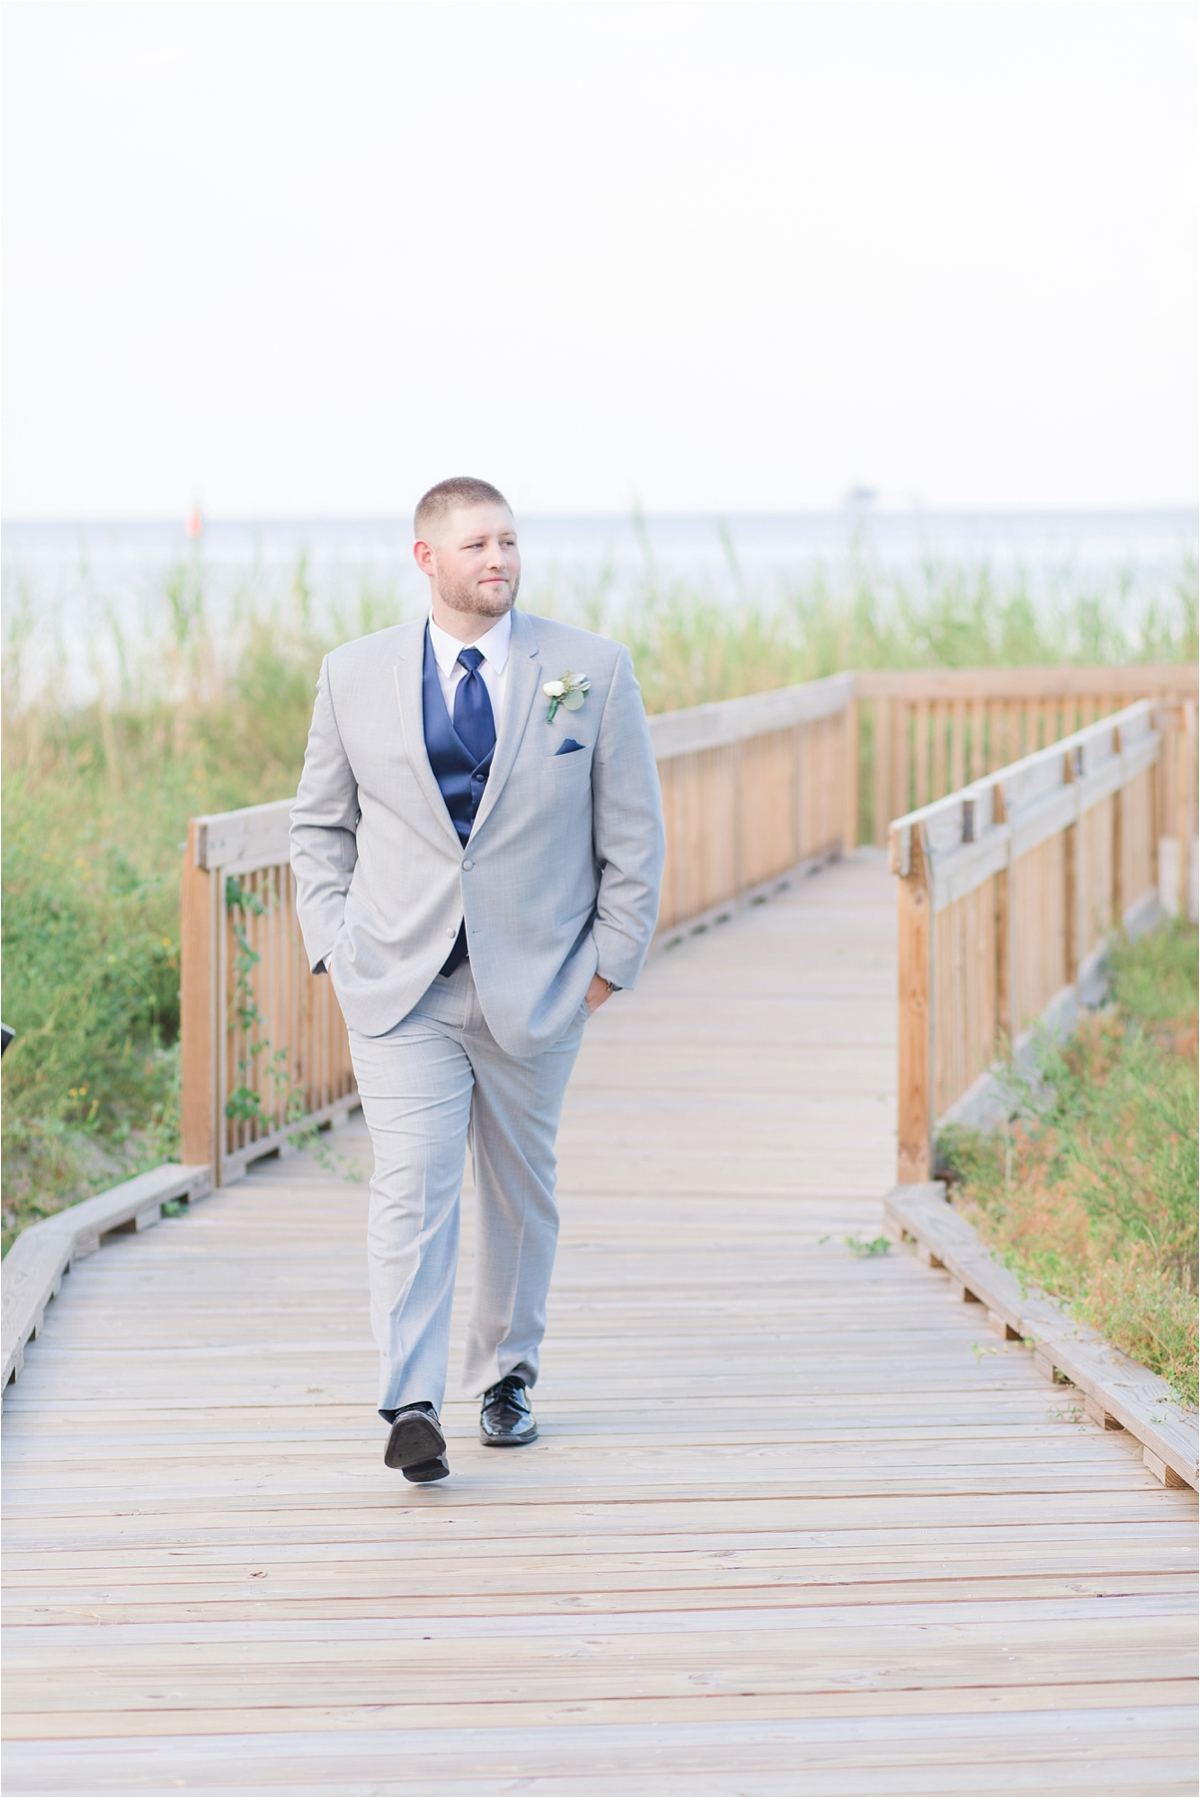 groom-navy-tie-vest-portraits-alabama-wedding-photographer-Dauphin Island Estuarium-on the beach-beach-dock